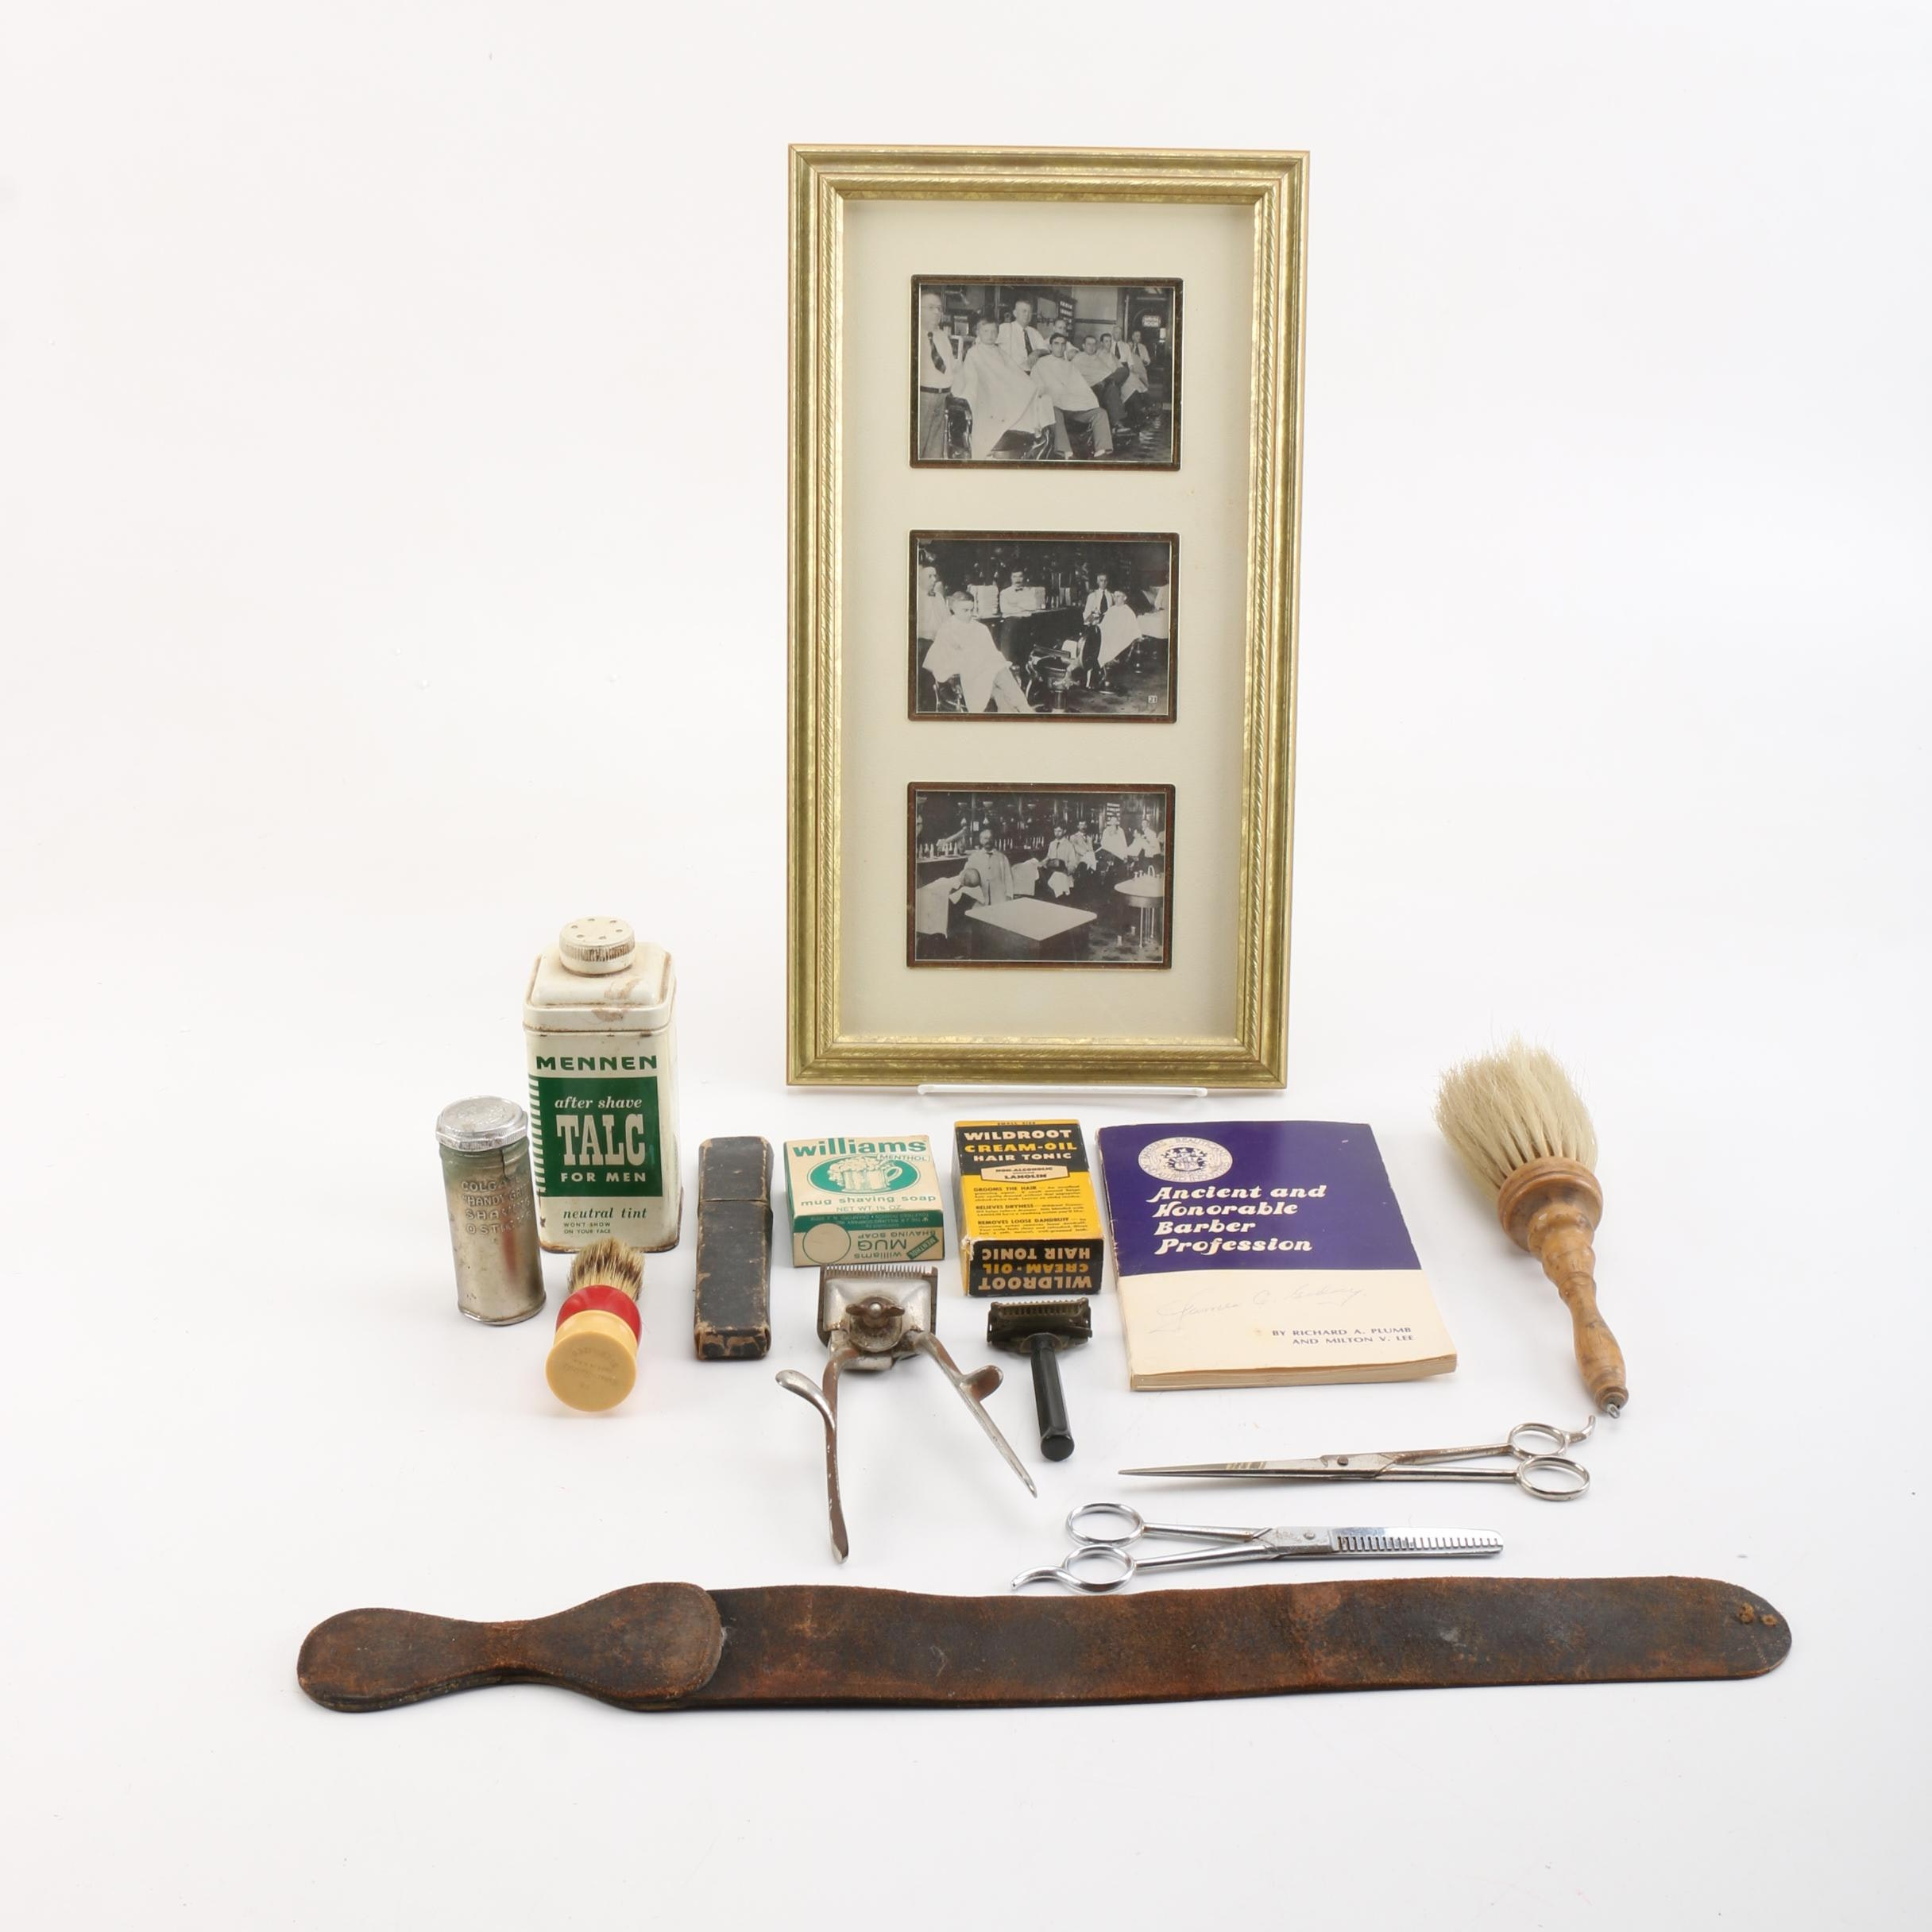 Vintage Barber Supplies, Including Straight Razor, Brushes and Clippers